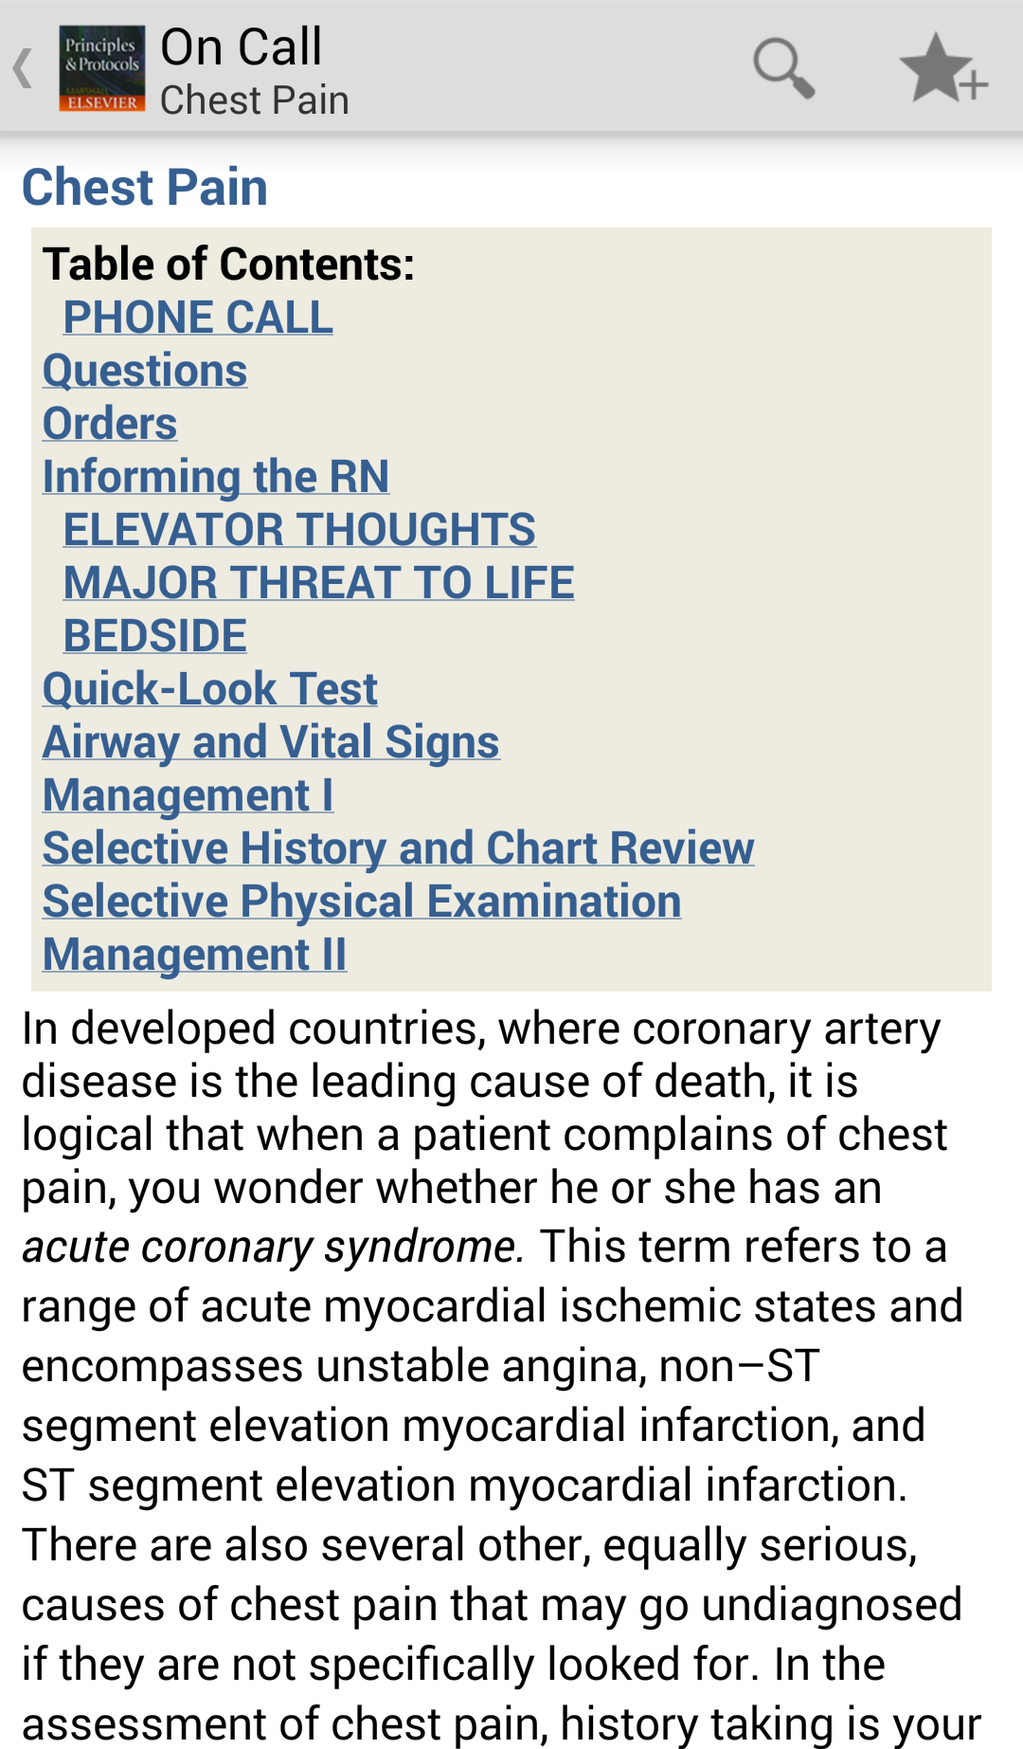 On Call Principles and Protocols Screenshot 9